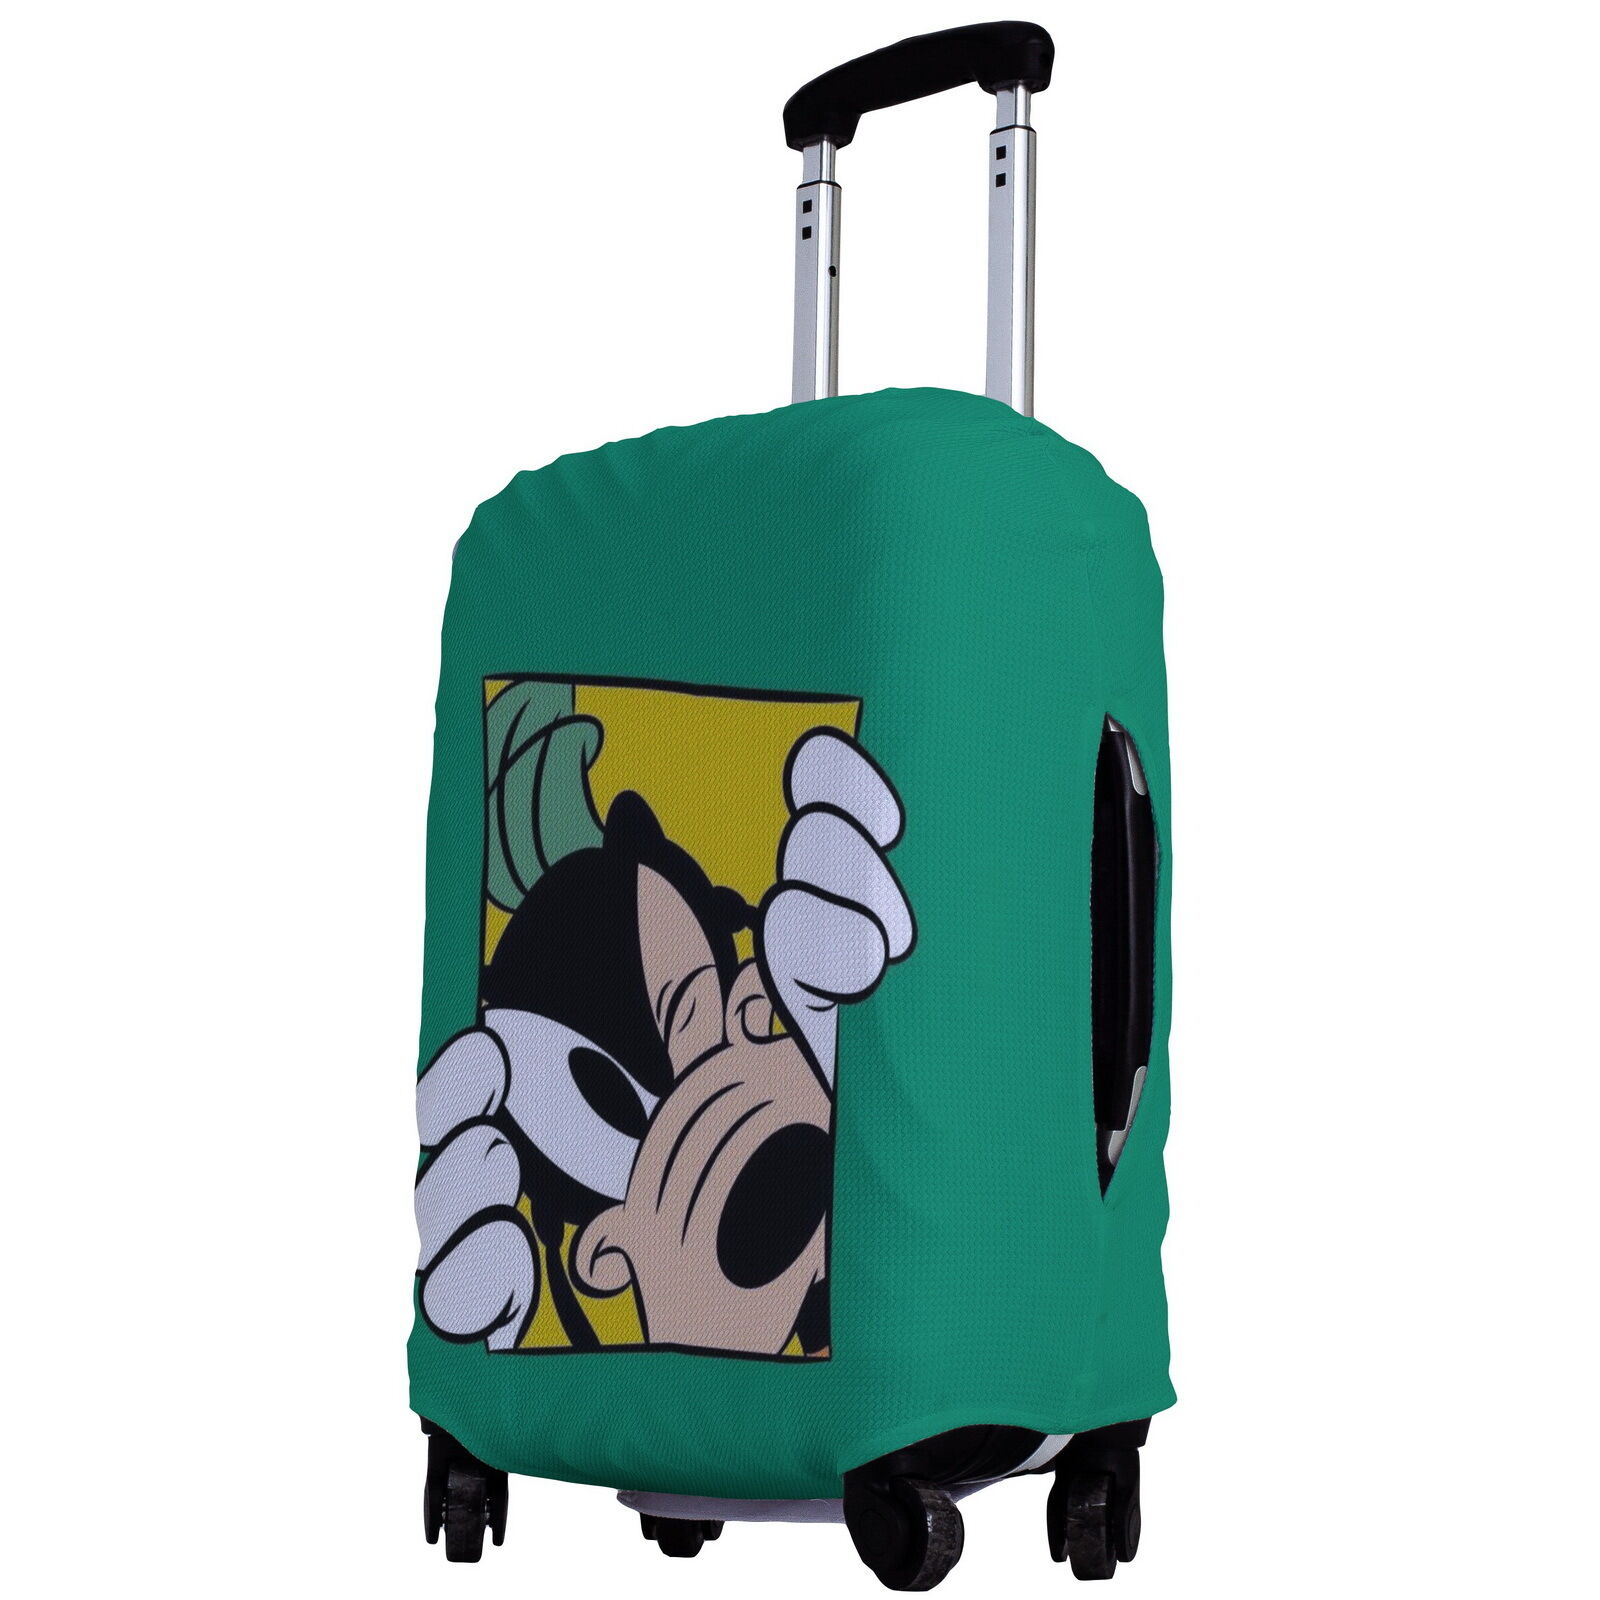 Another Goofy Suitcase Cover